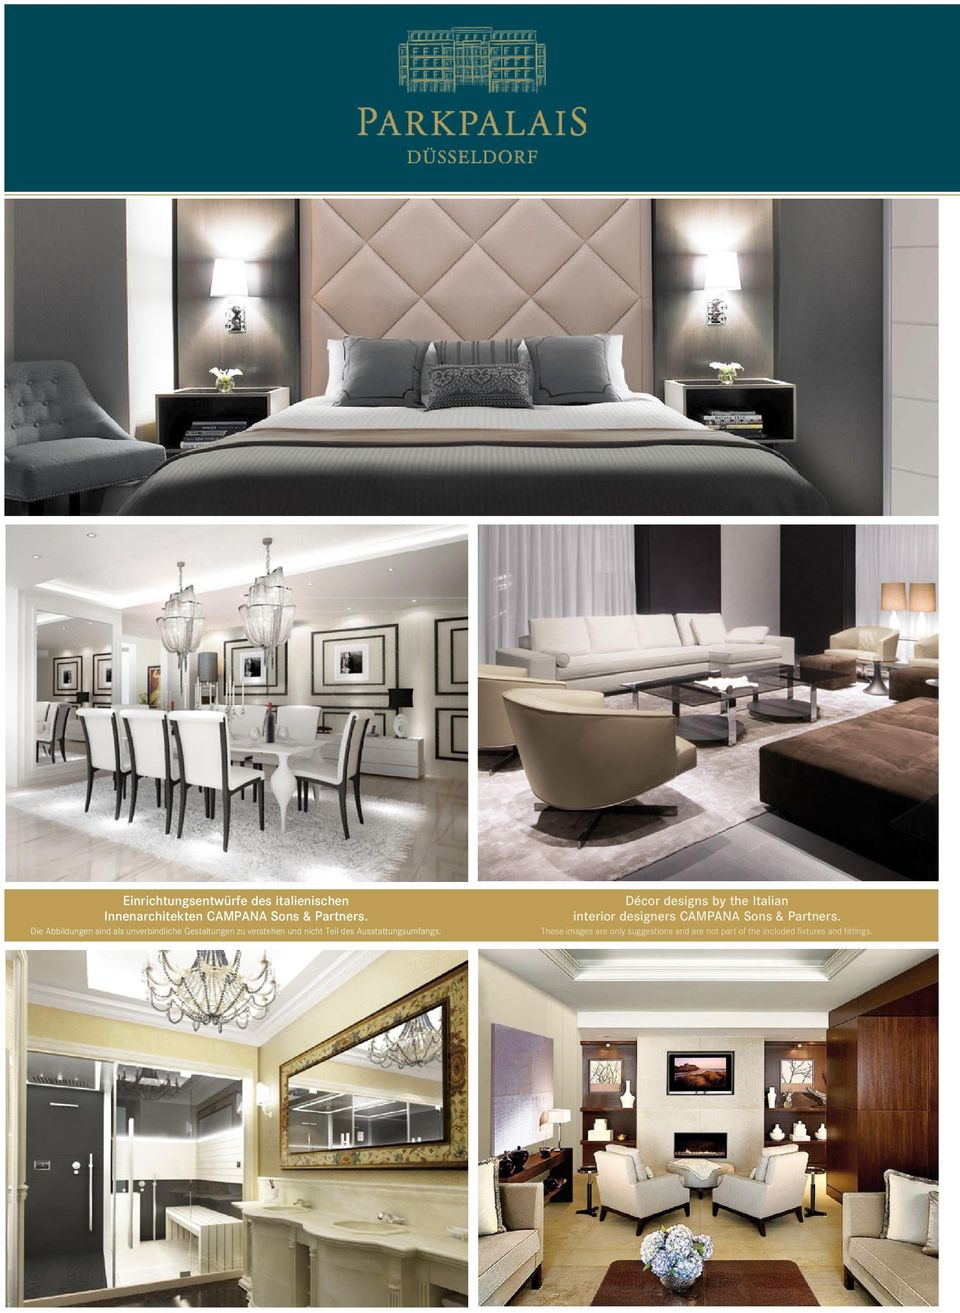 Wo Luxus zuhause ist.where luxury is at home.«   PDF Free Download